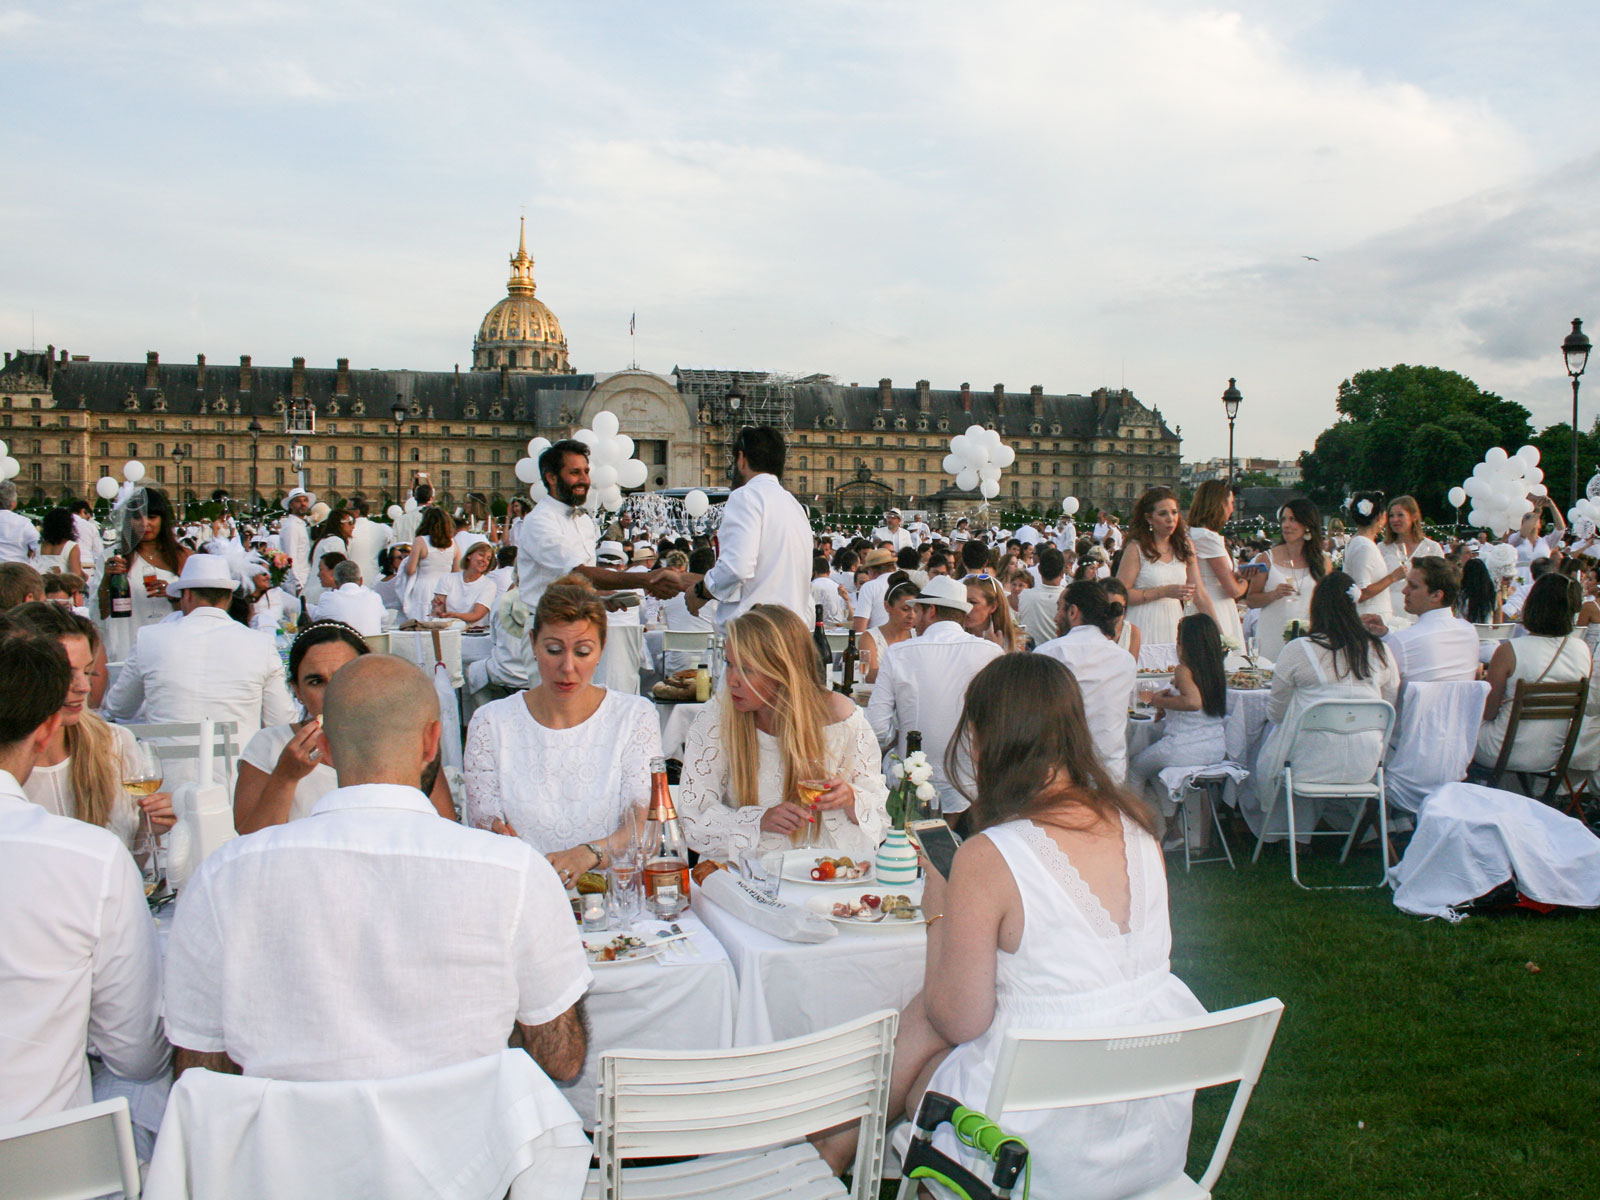 I Ate at Paris's Dîner en Blanc, the 30th Anniversary of the Secretive Pop-Up Dinner Party